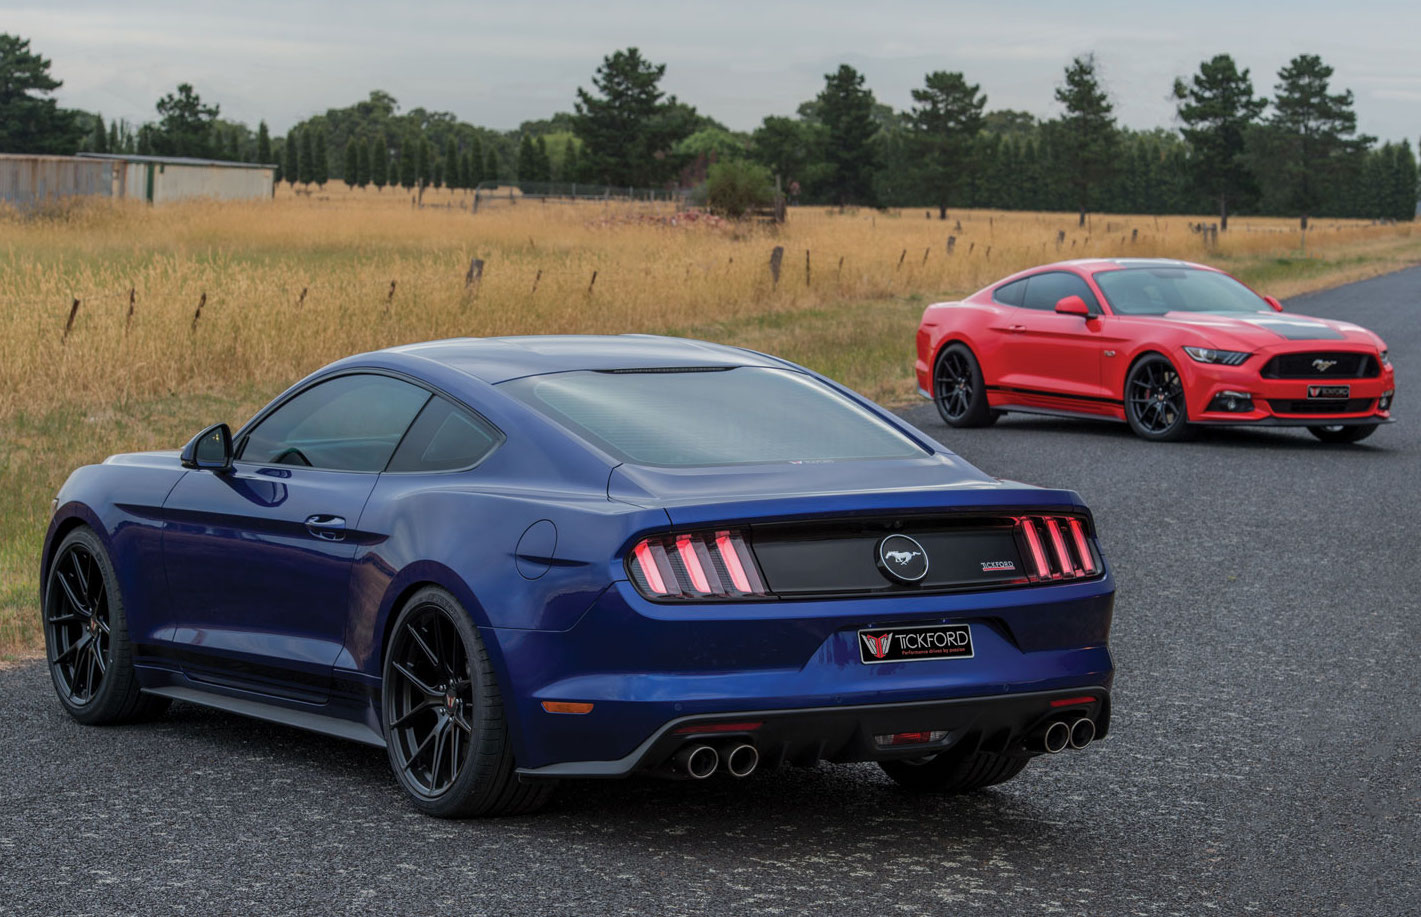 Starting With The Entry Level Ecoboost Mustang Power From The   Litre Turbocharged Four Cylinder Unit Has Been Increased From The Stock Kw At Rpm